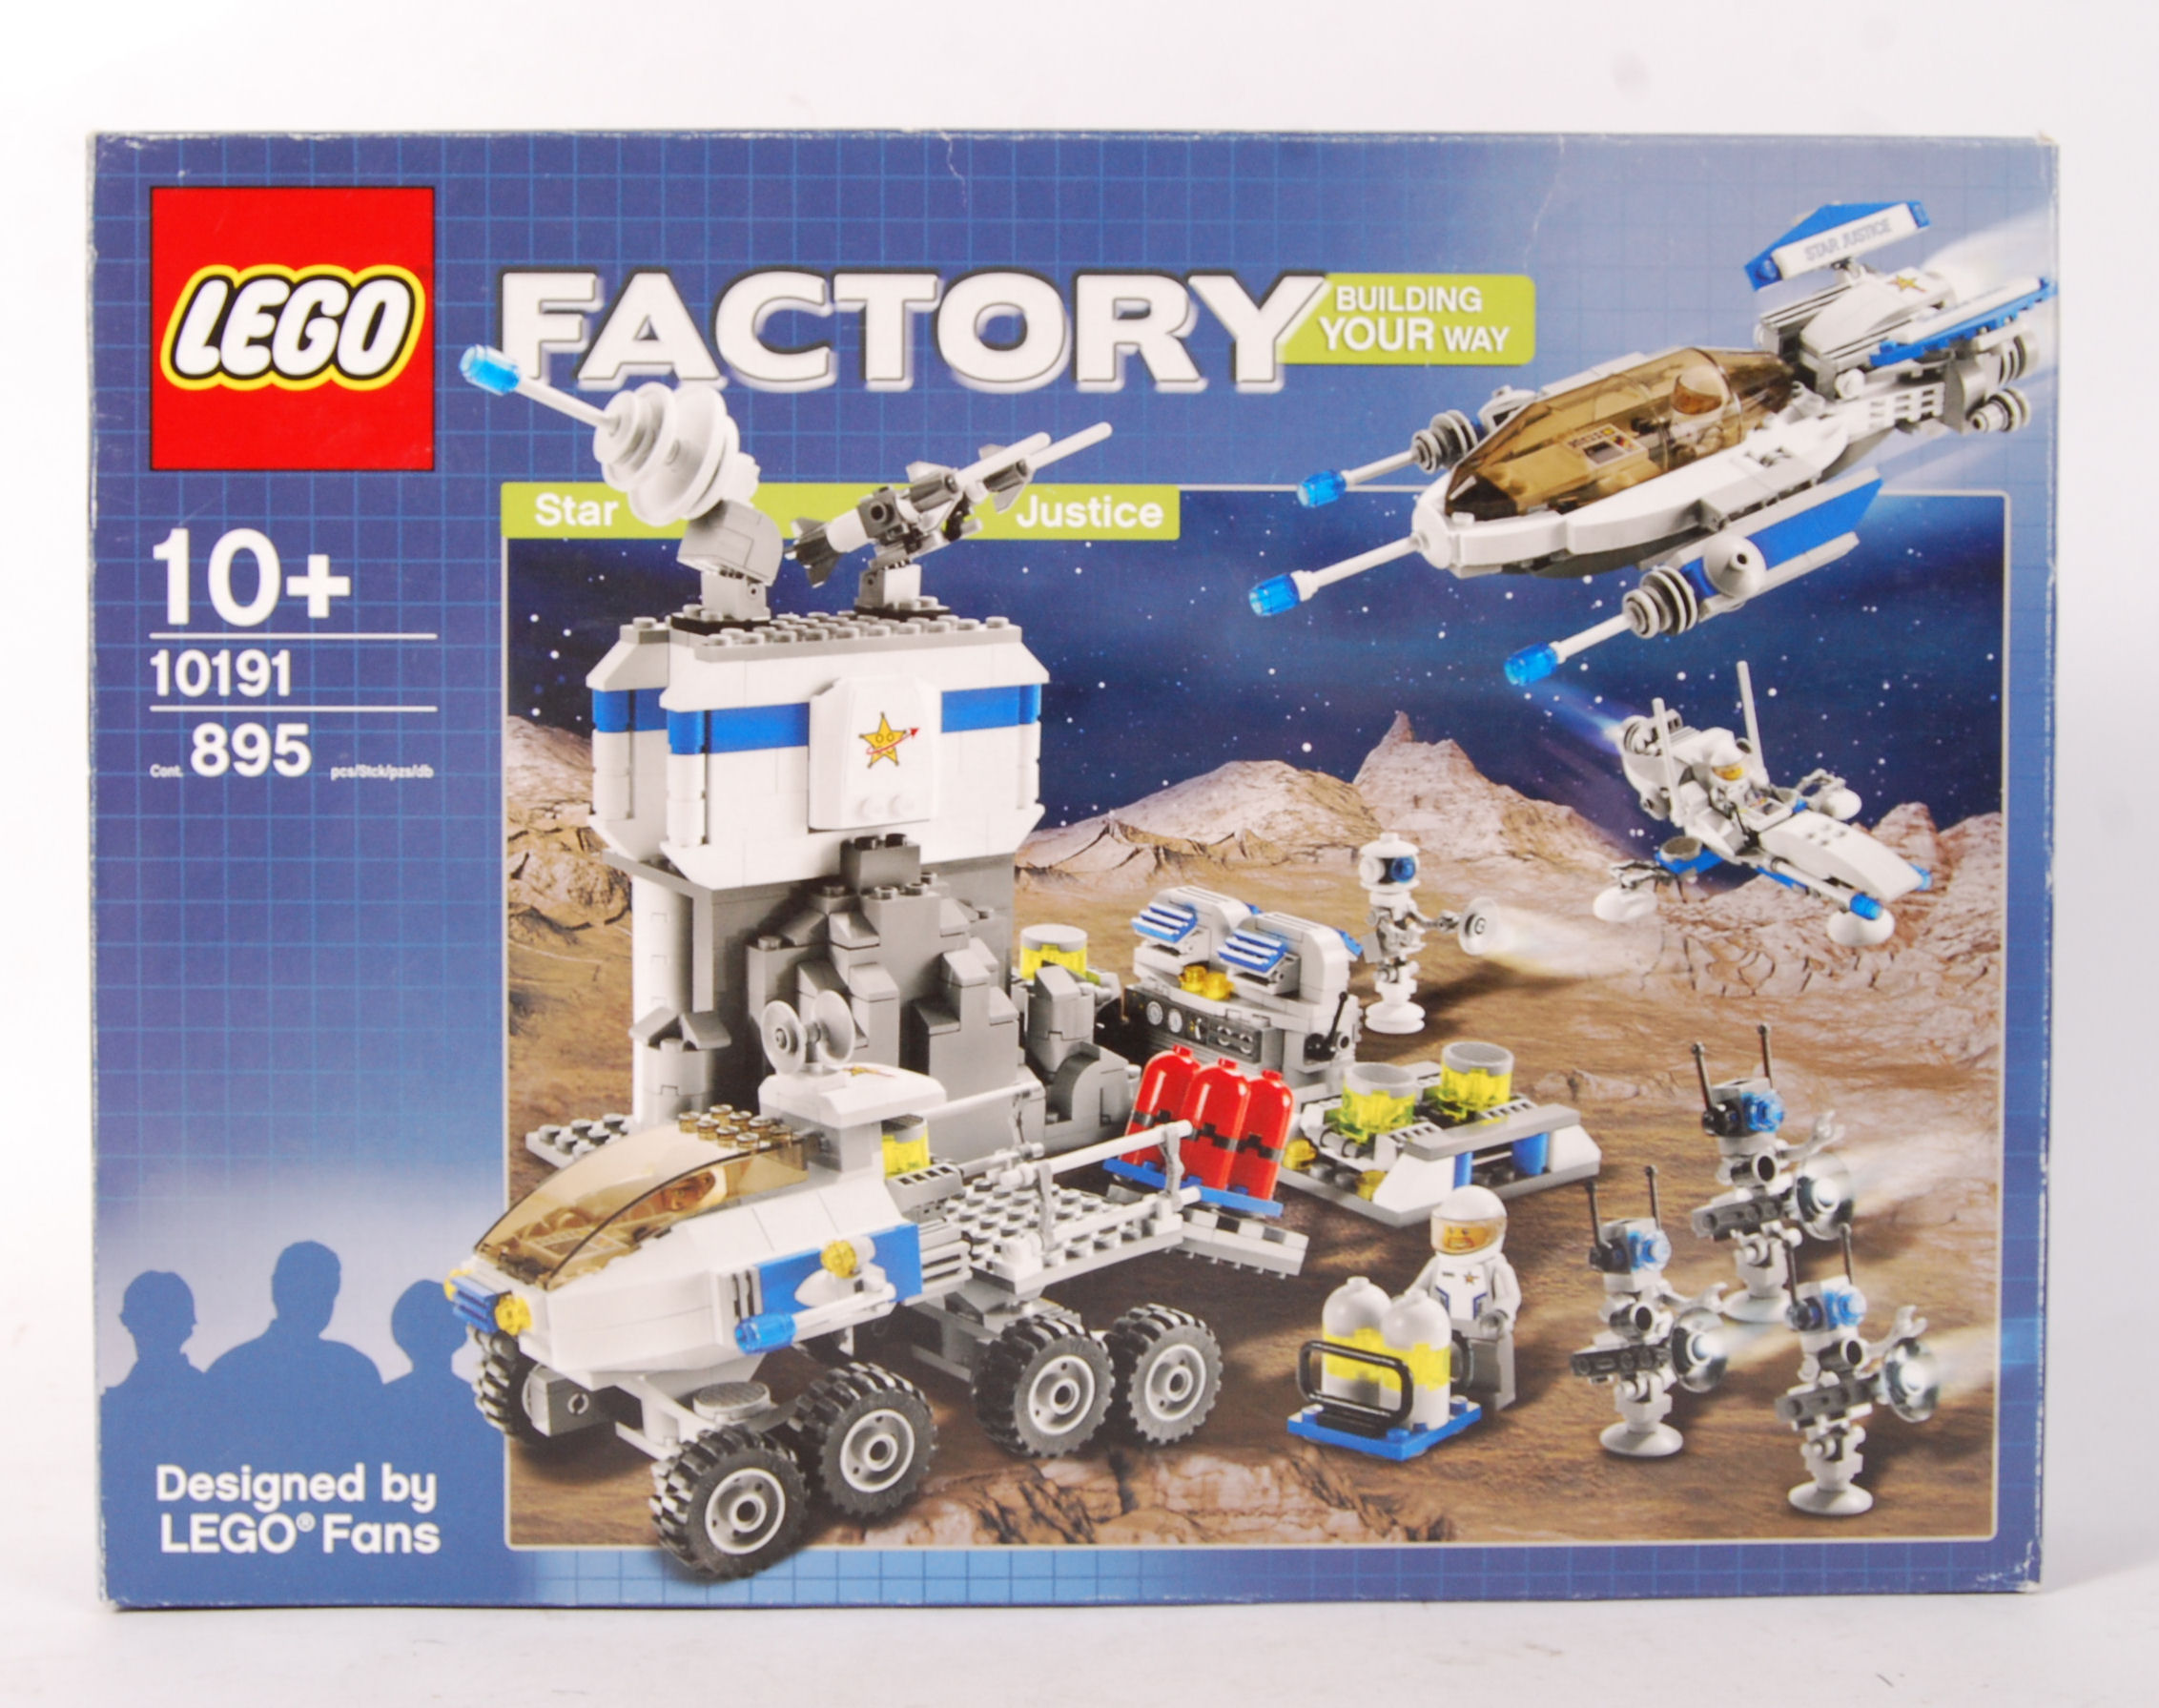 LEGO FACTORY 10191 ' STAR JUSTICE ' BOXED SET